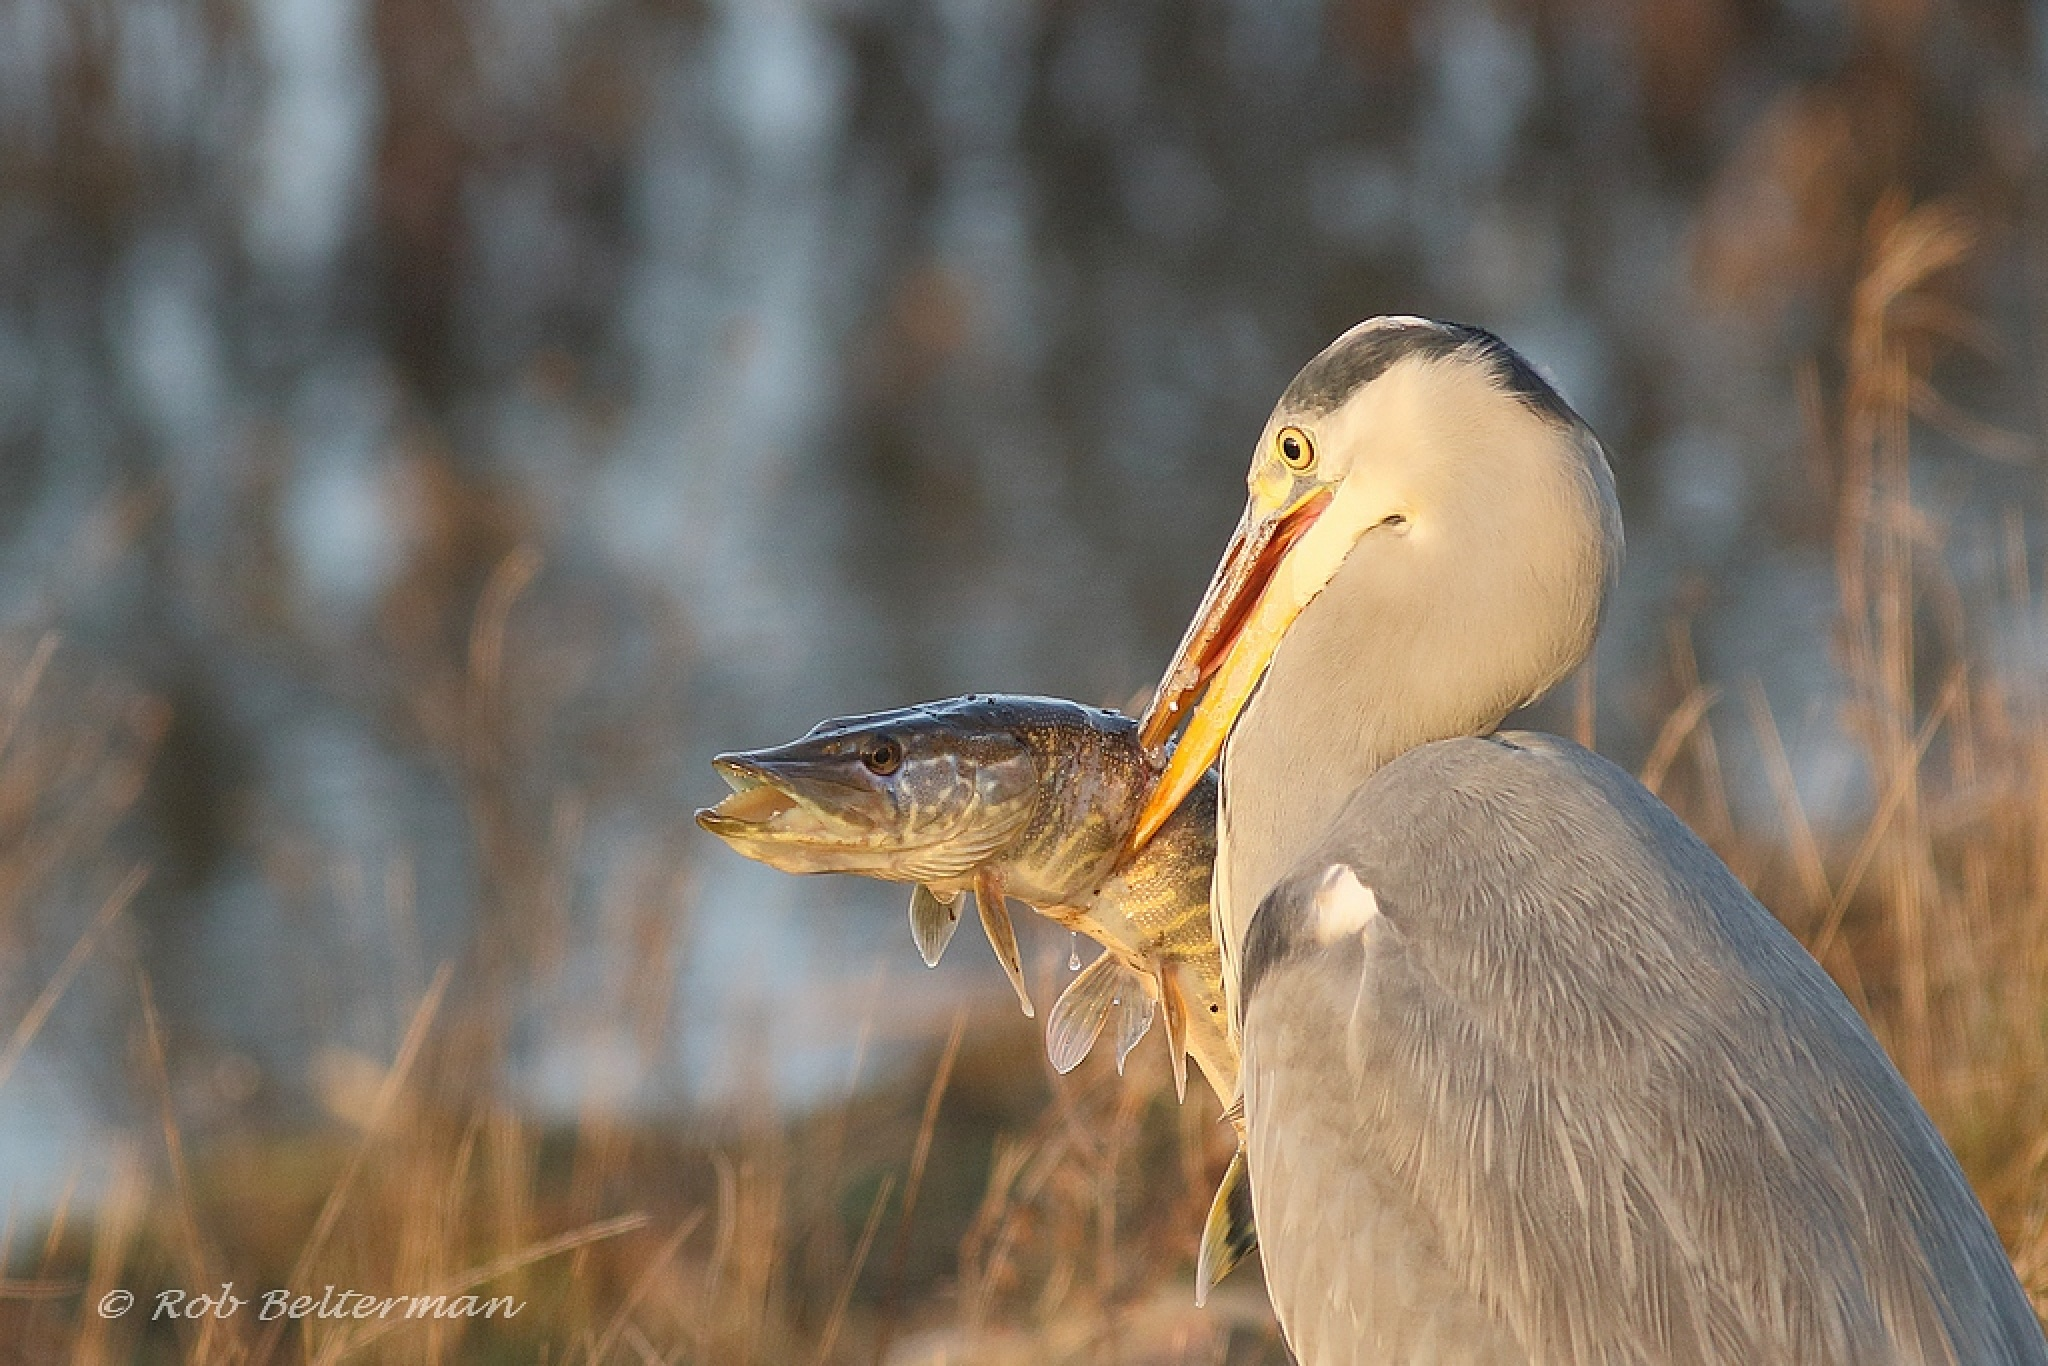 Heron with Pike by robbelterman